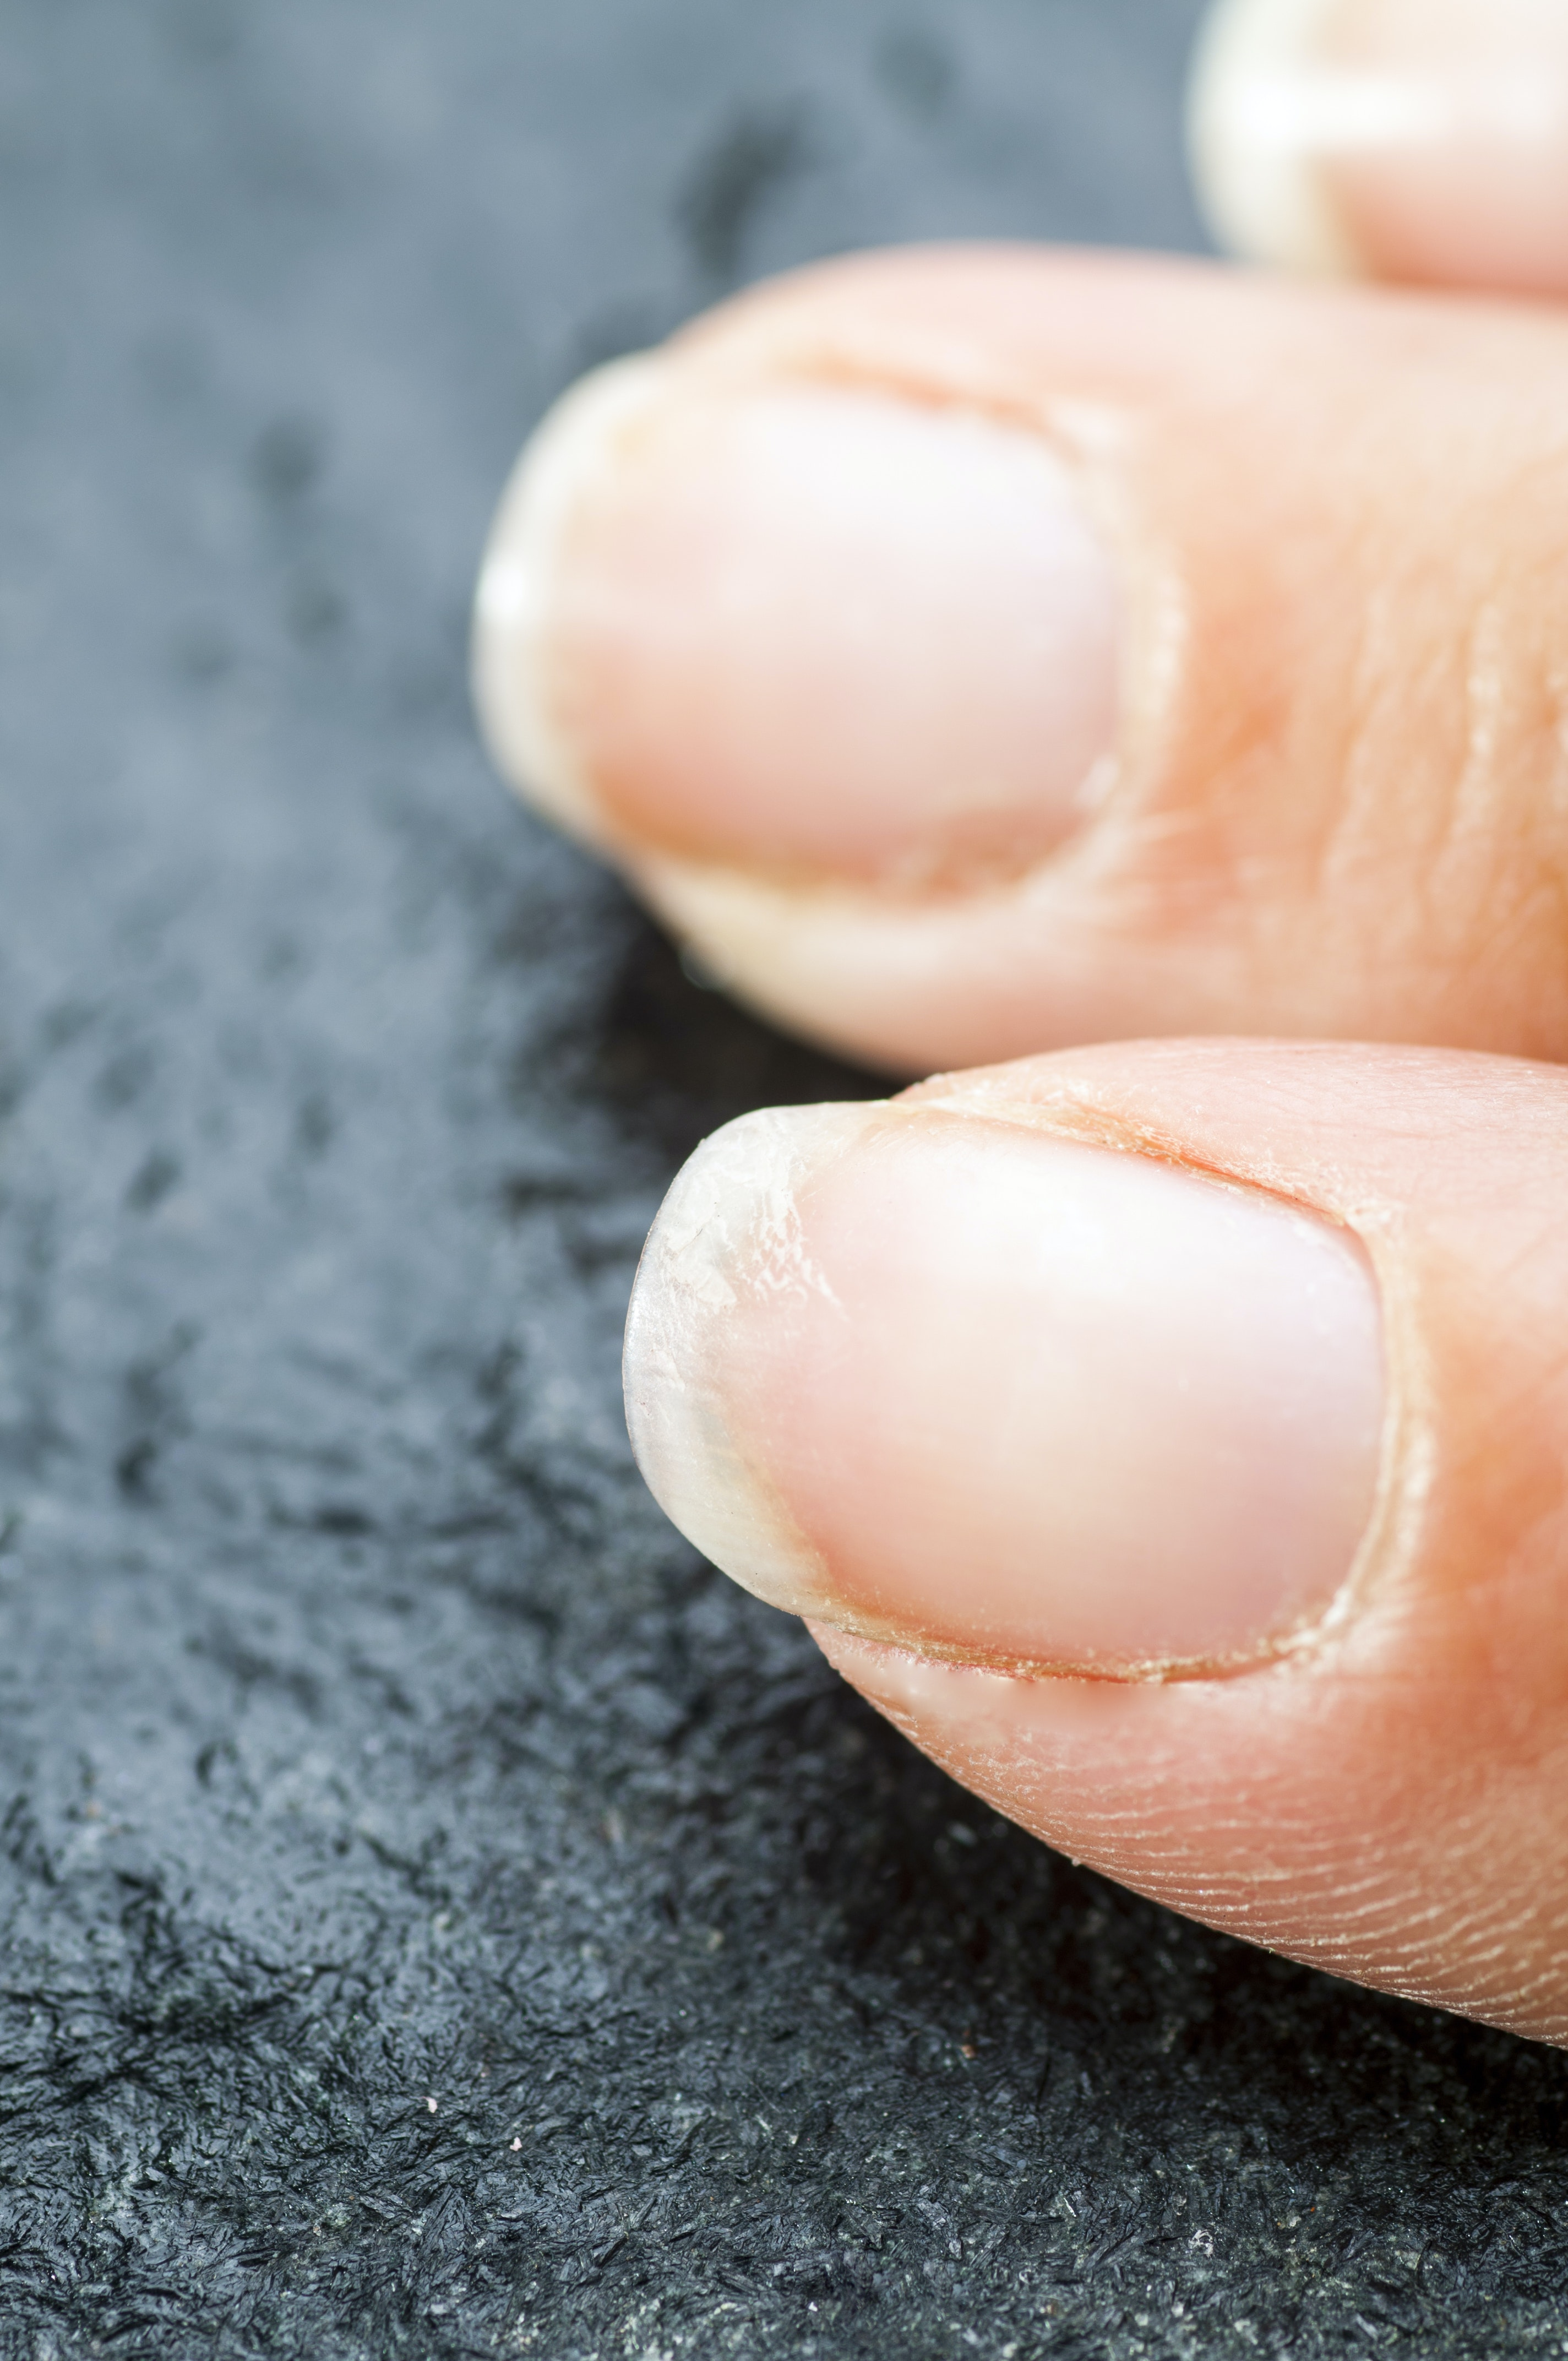 An image depicting a person suffering from brittle fingernails symptoms